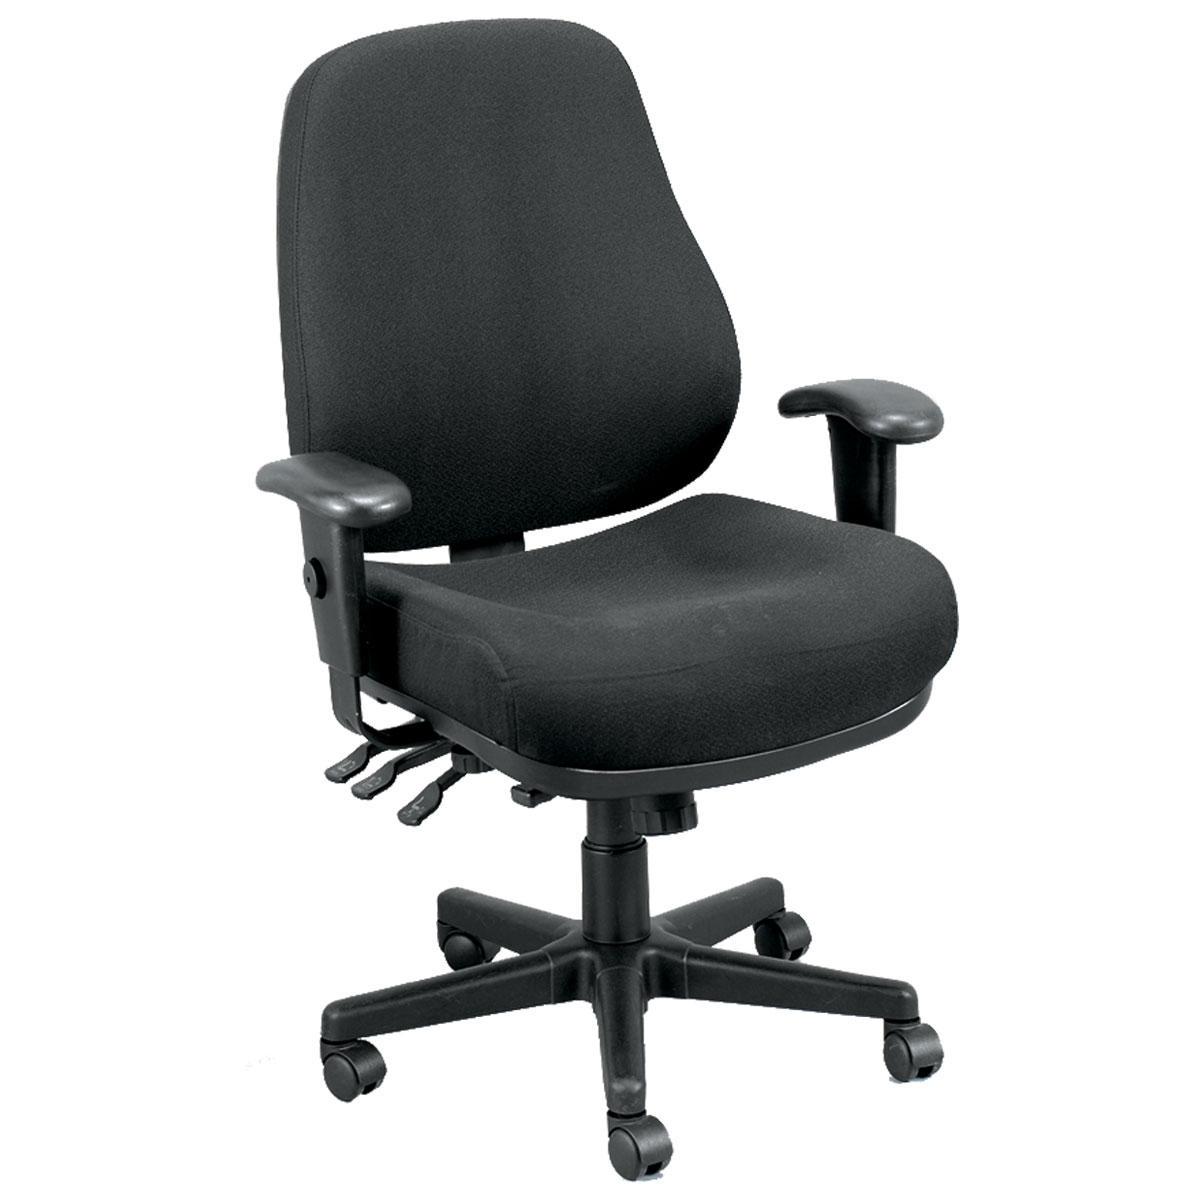 chairs task chairs raynor eurotech 24 7 ergonomic intensive use chair